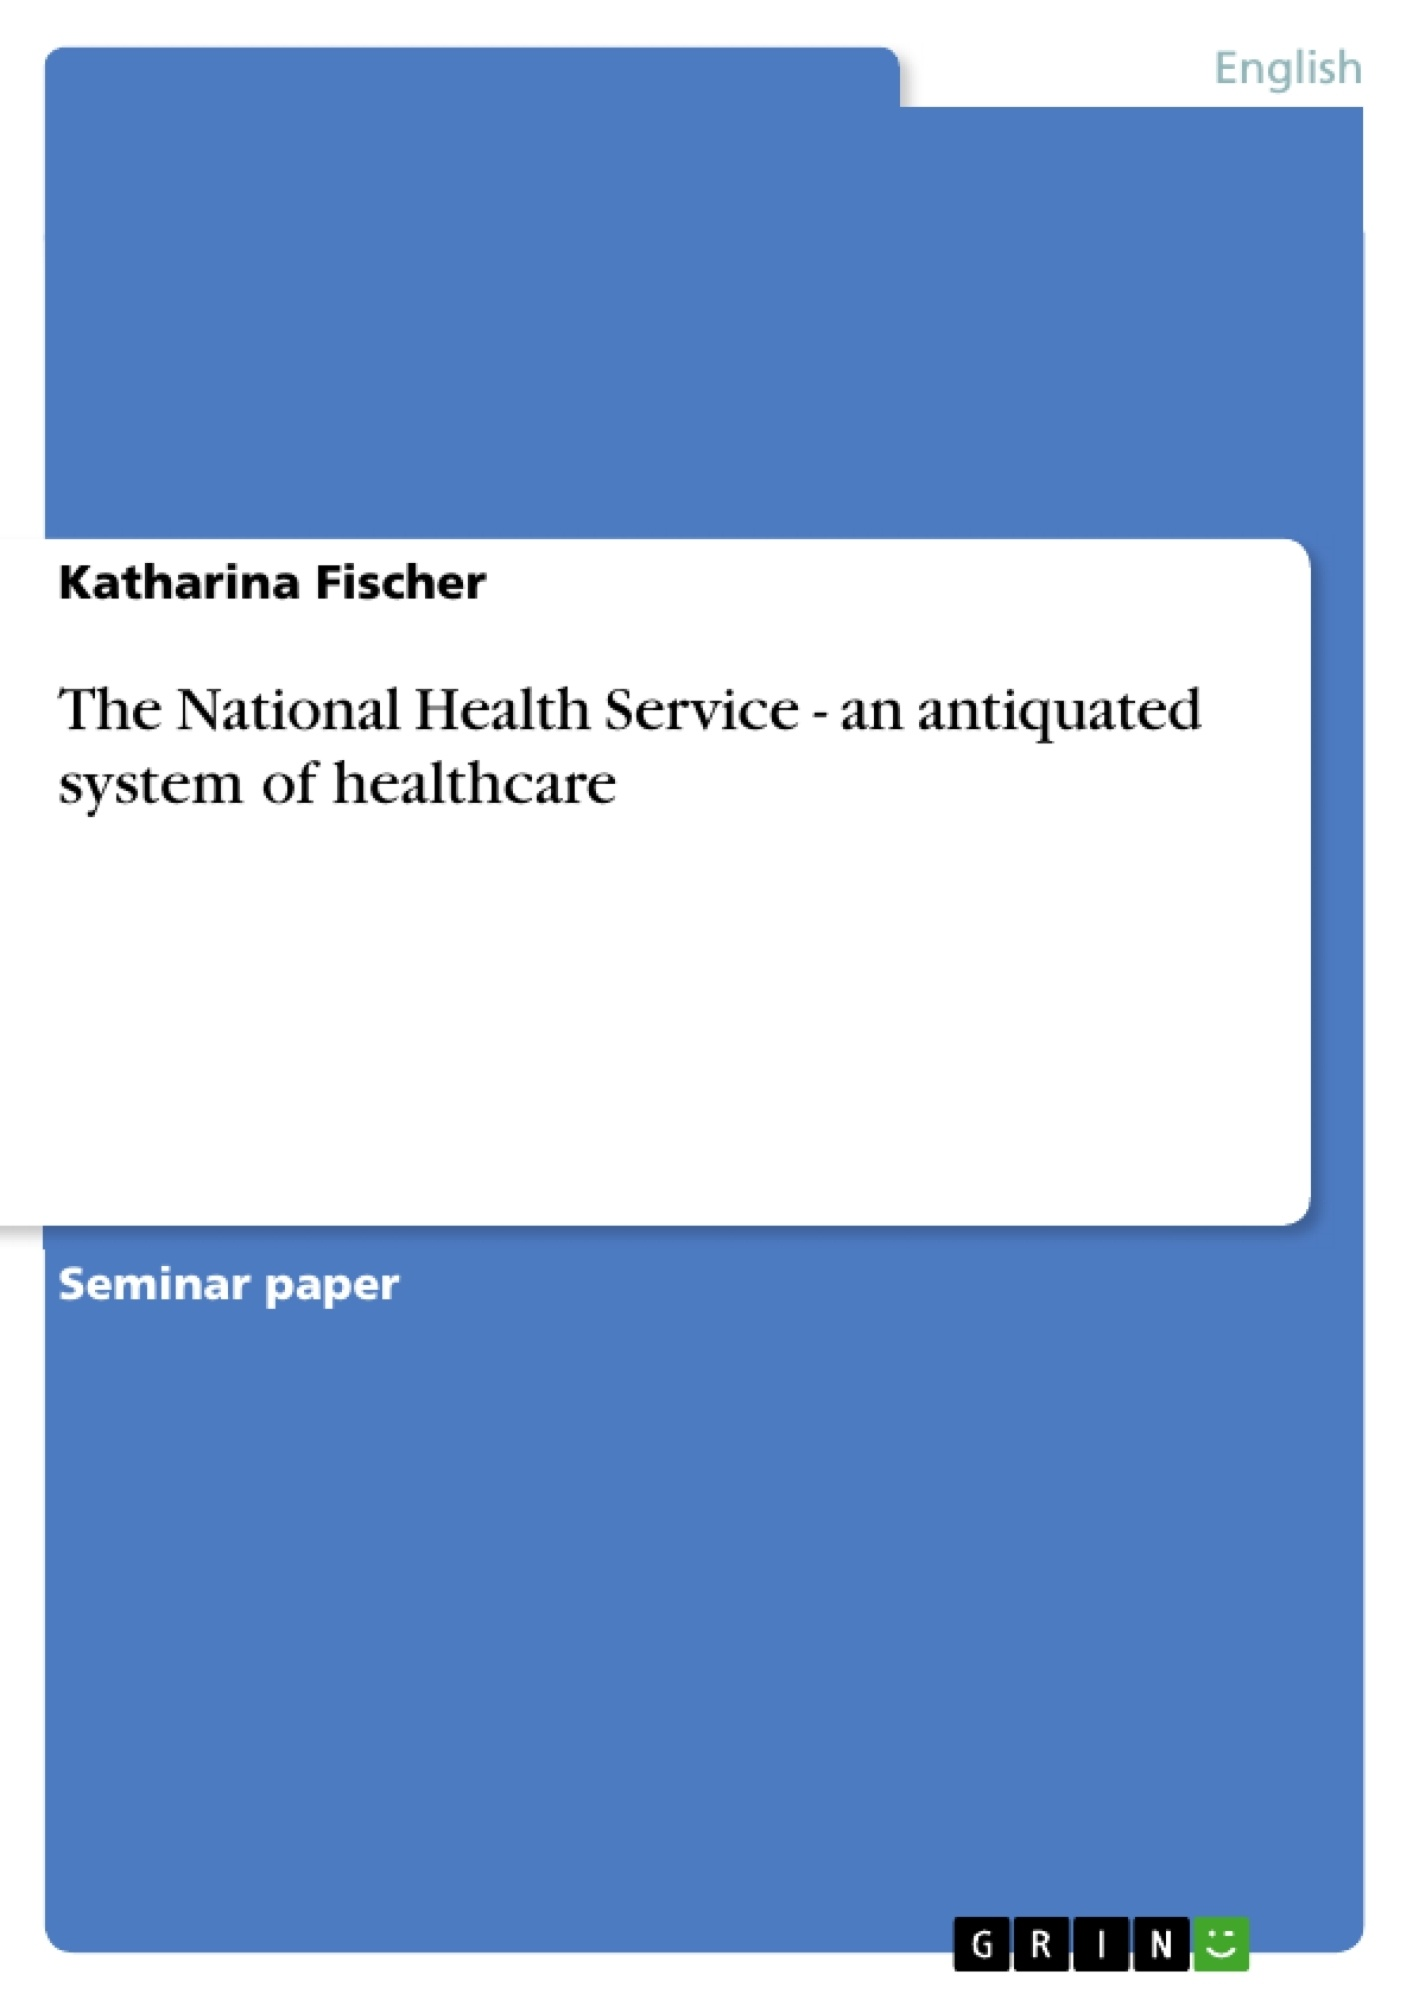 Title: The National Health Service -  an antiquated system of healthcare